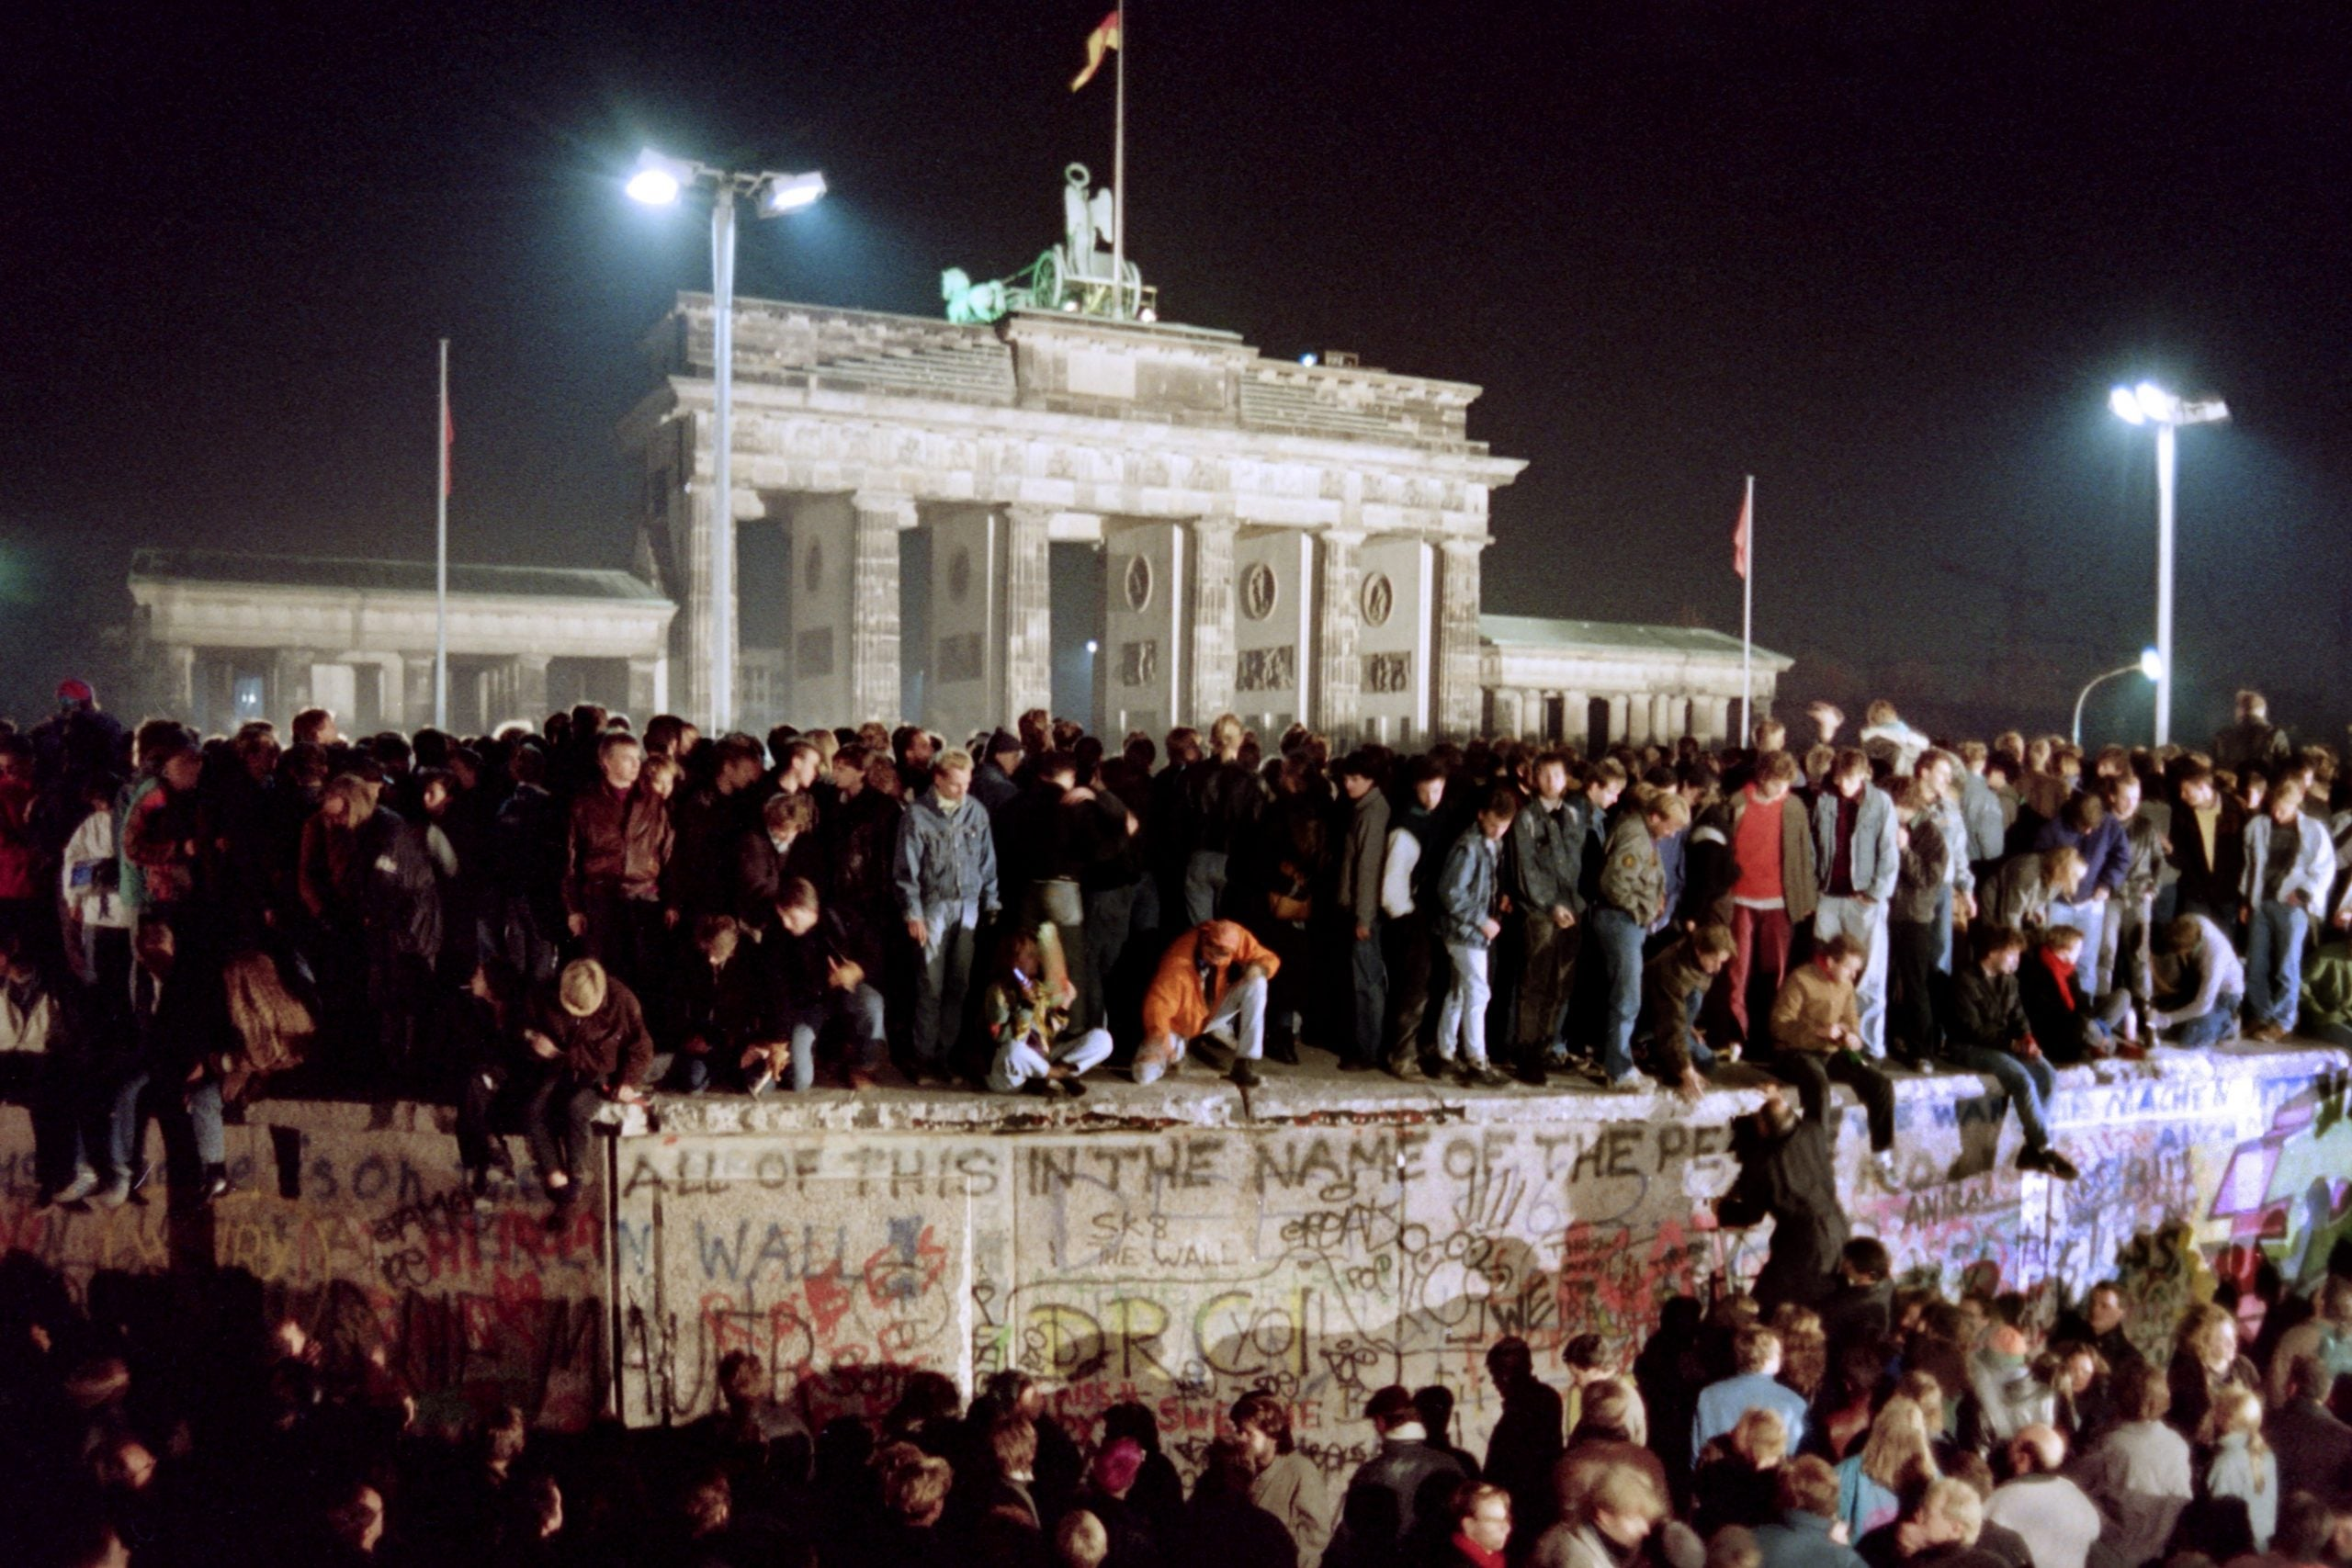 Germany seems strong, but it is still grappling with the forces unleashed when the wall fell